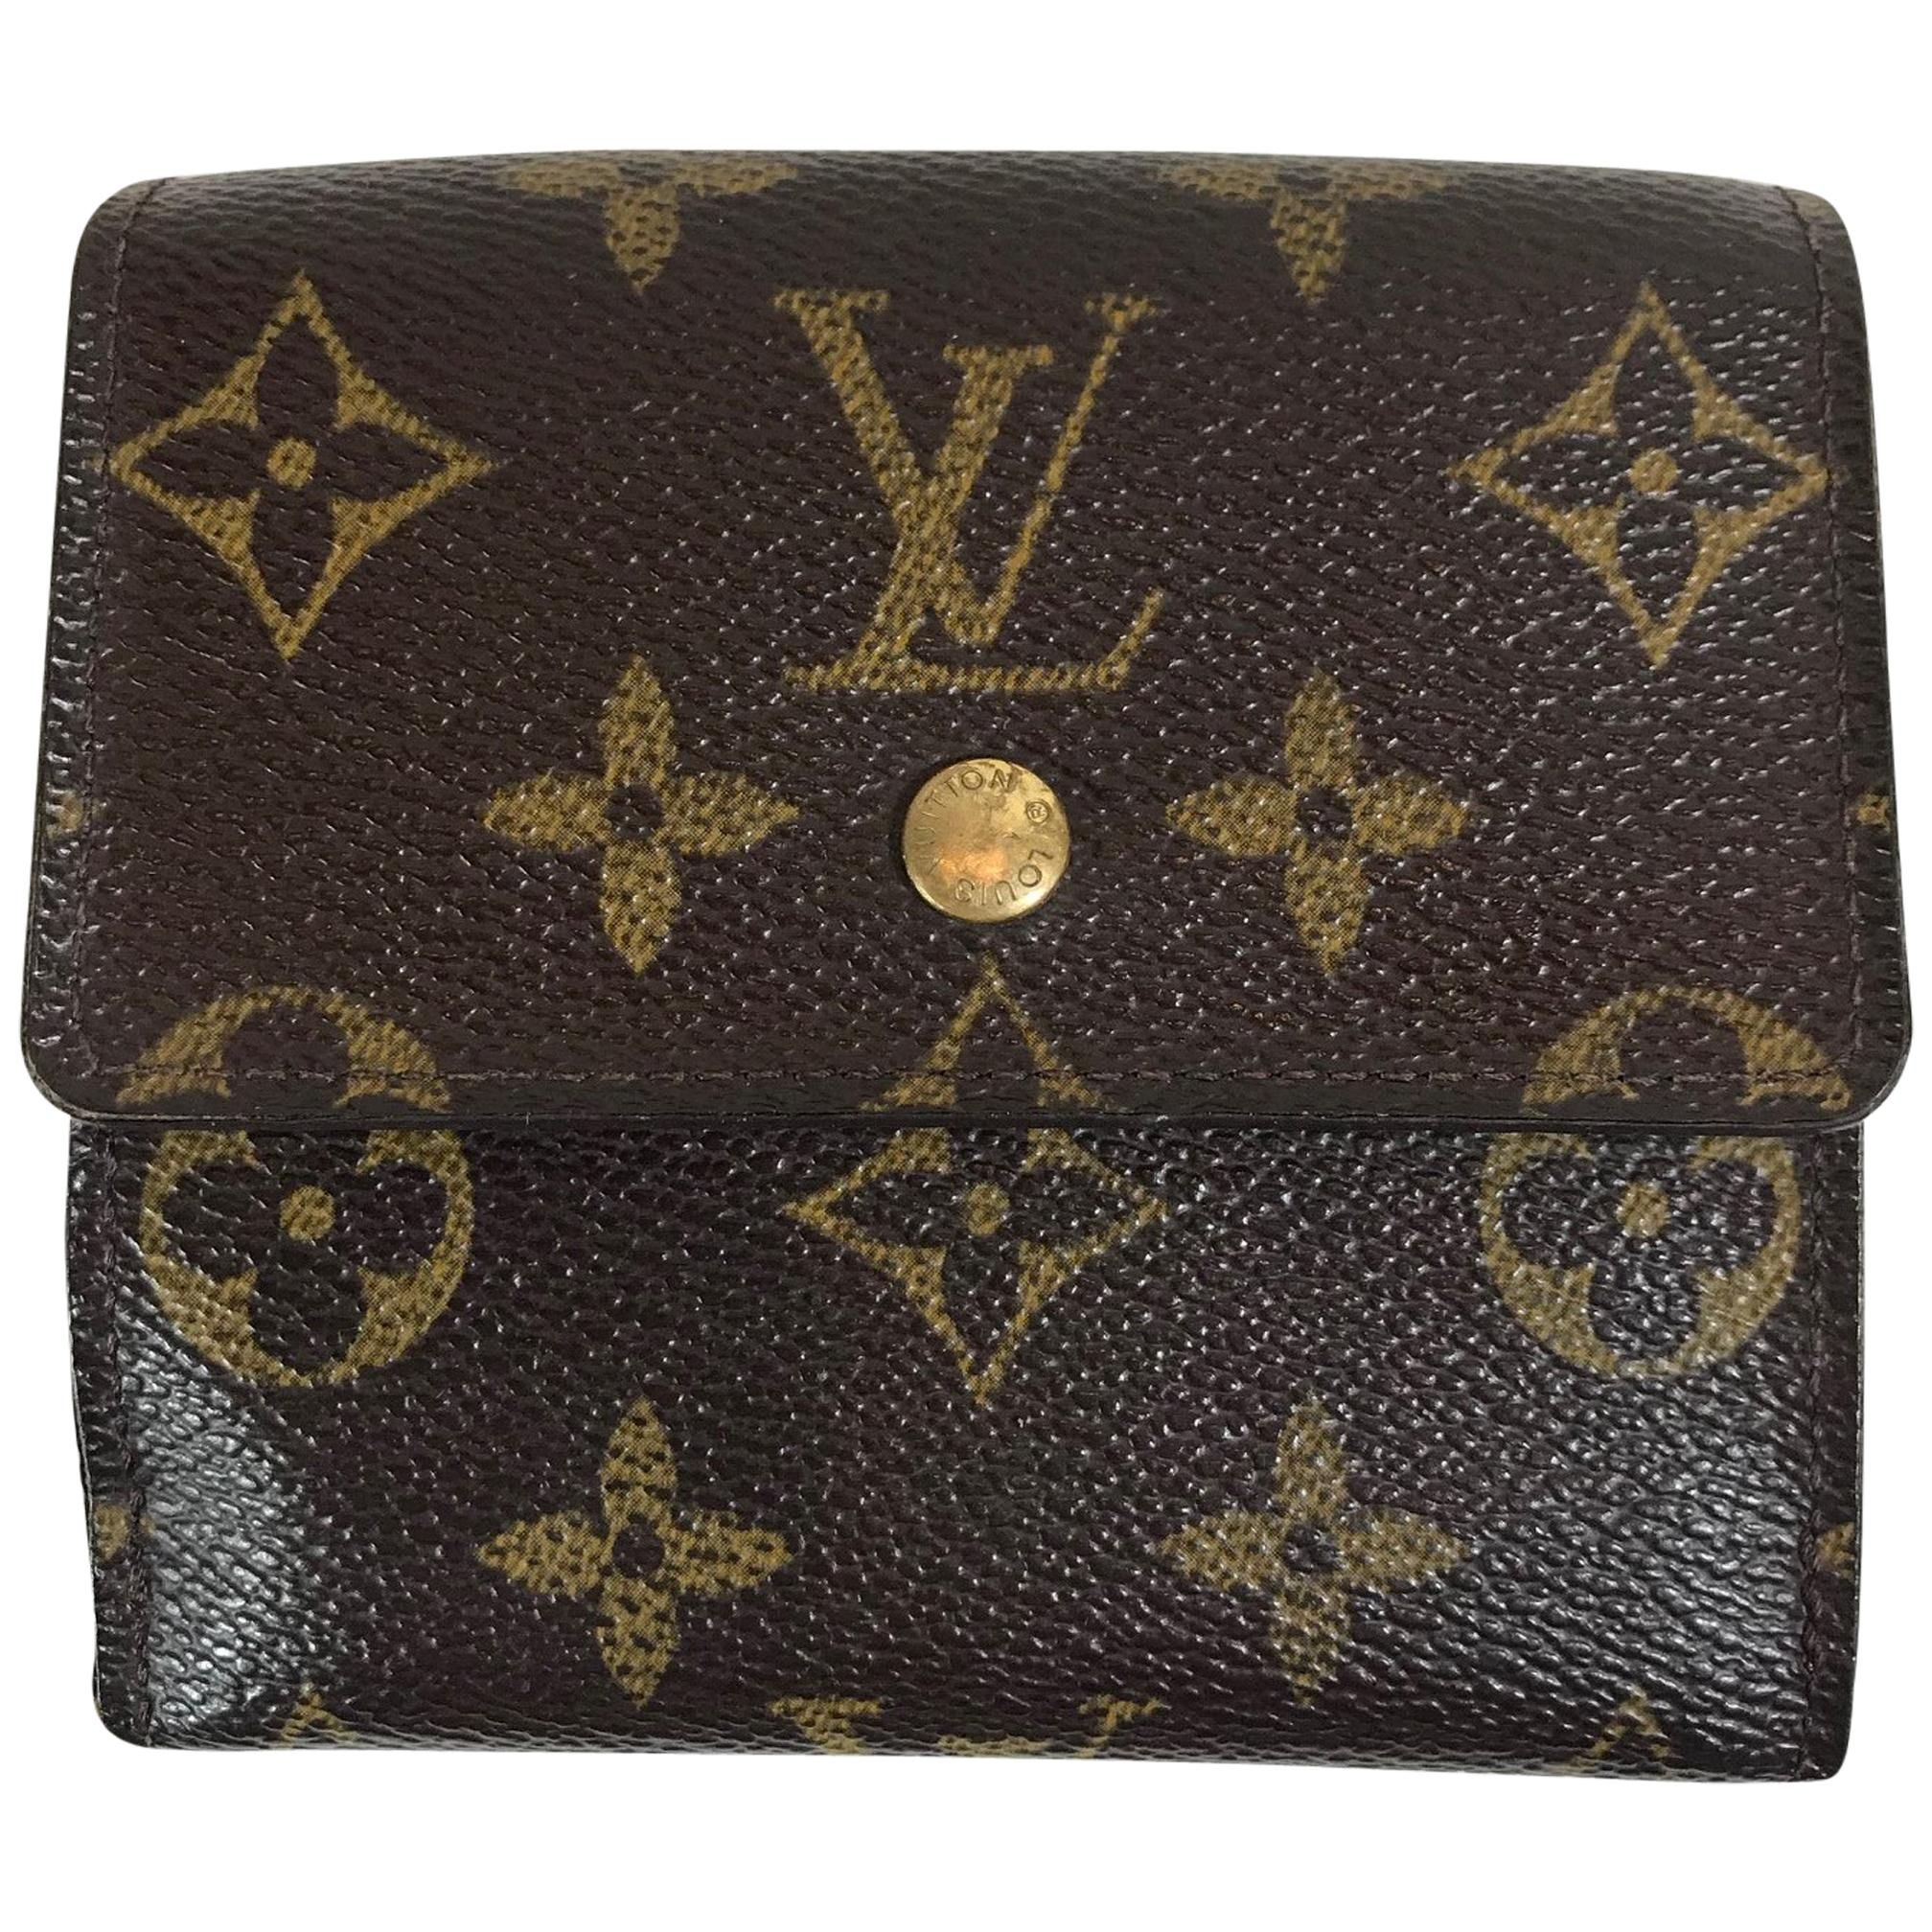 Louis Vuitton Monogram Elise Wallet For Sale at 1stdibs 4678193af8e0c